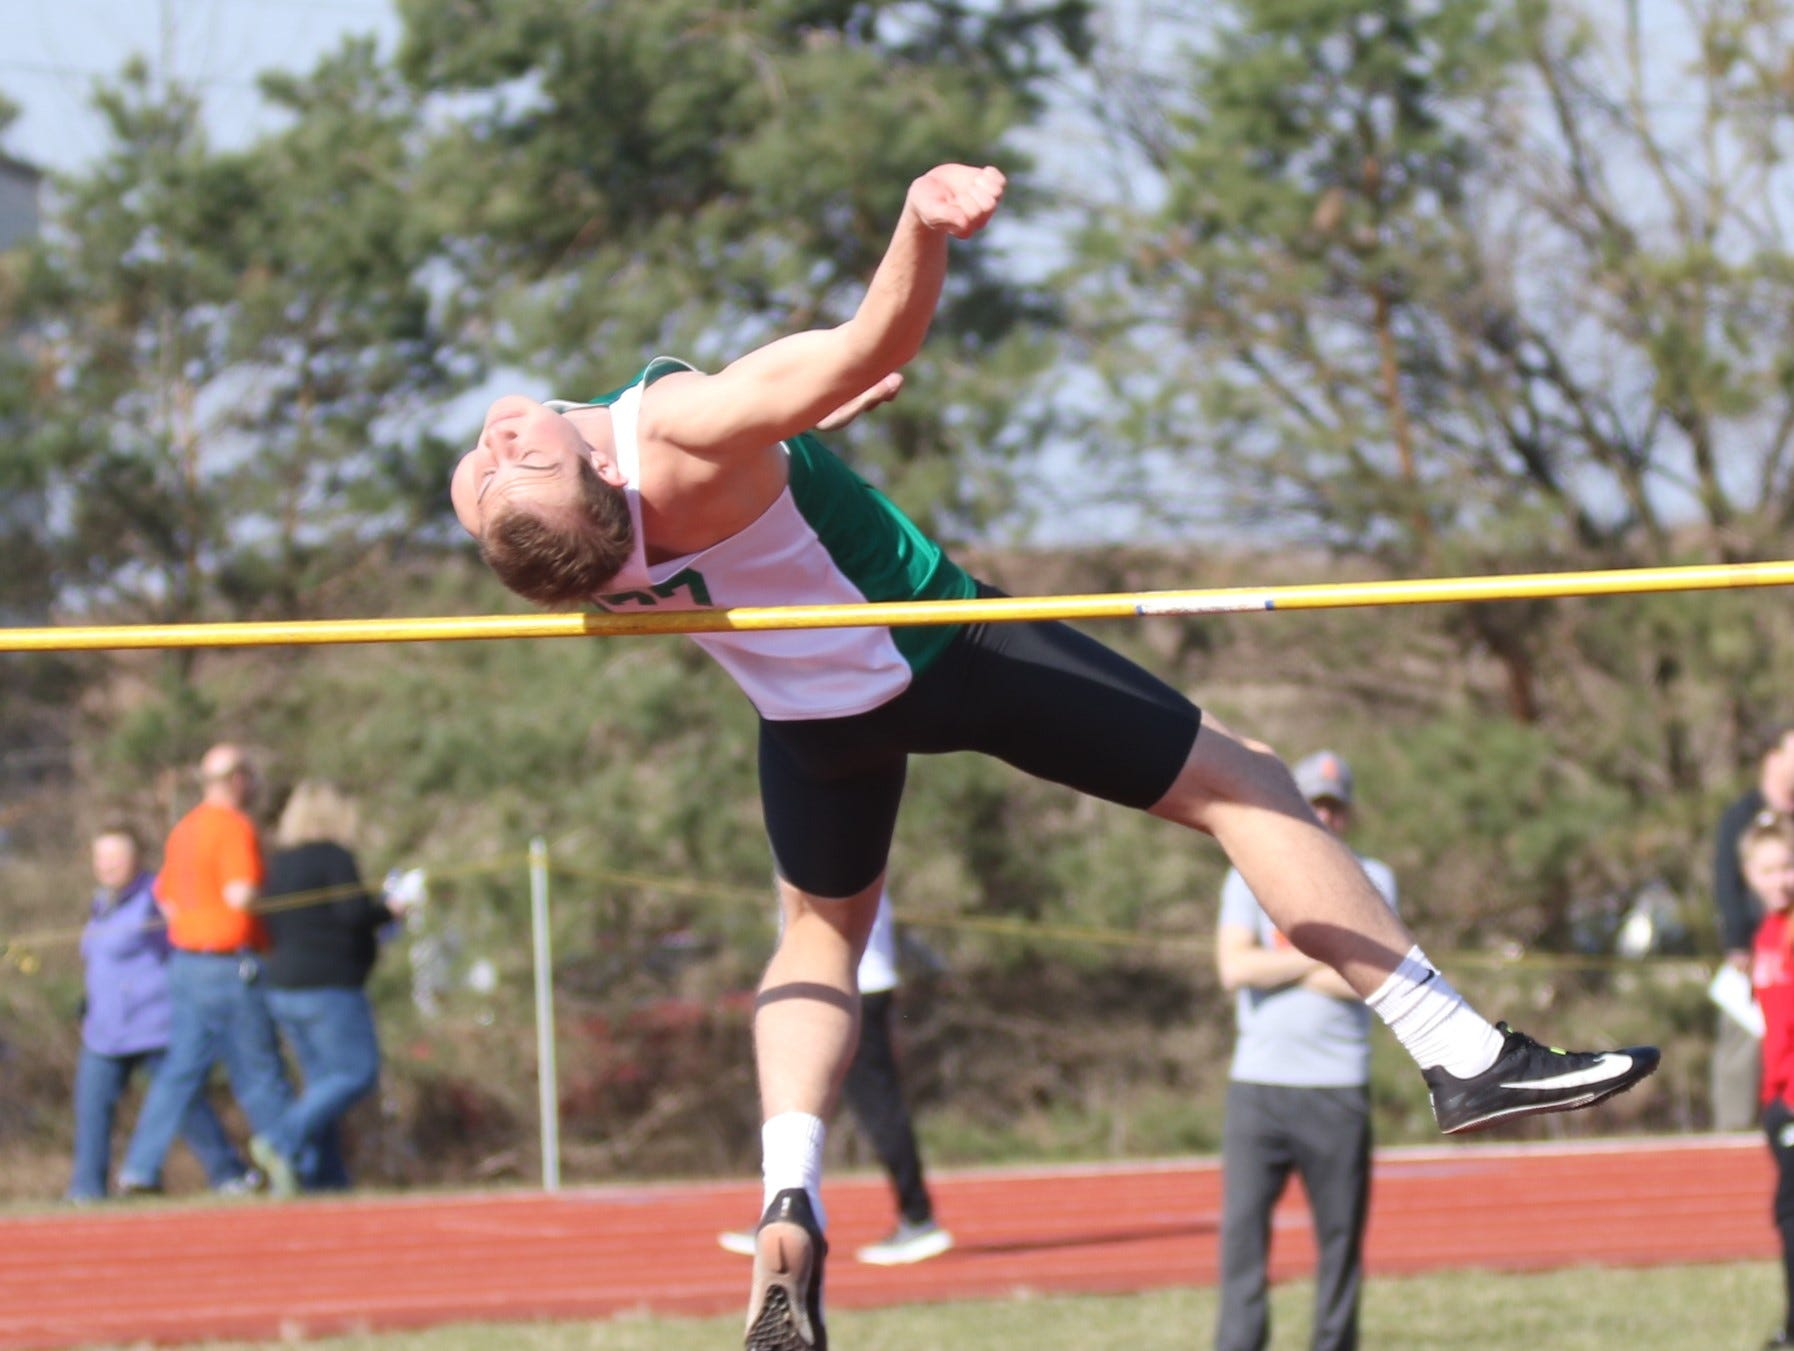 Clear Fork's Seth Stoner went toe-to-toe with Shelby's Uriah Schwemley in the high jump during the Shelby High School Invitational on Saturday afternoon.